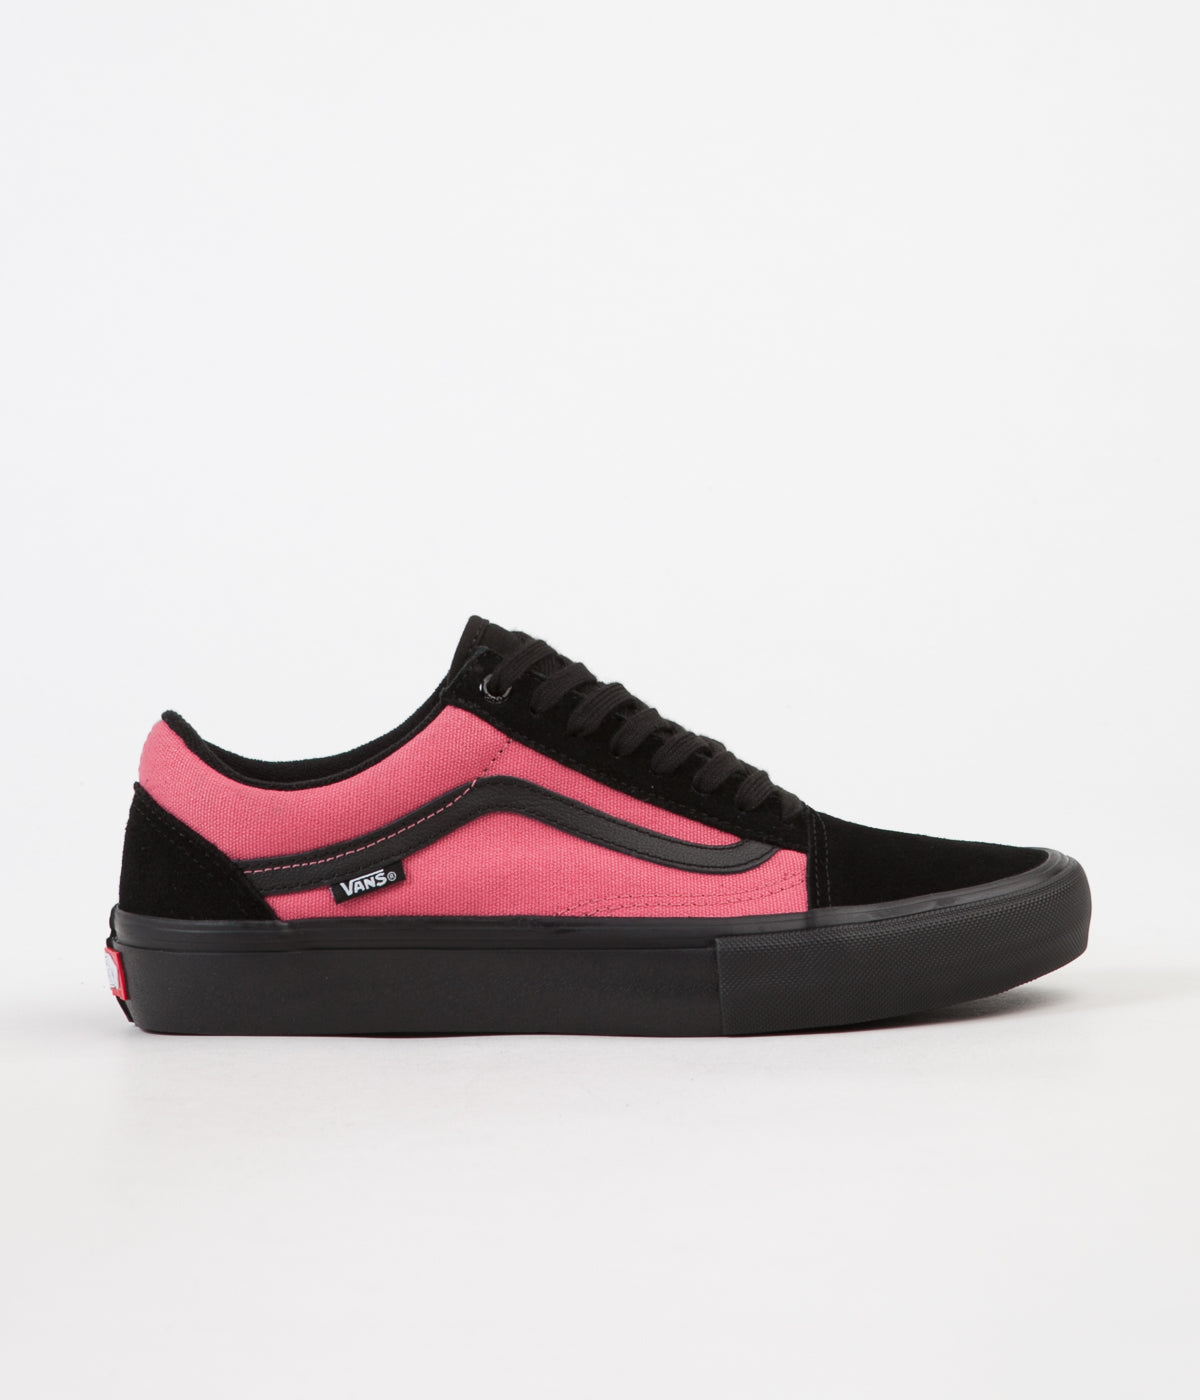 a09c9a20ca Vans Old Skool Pro Asymmetry Shoes - Black   Rose   Blue